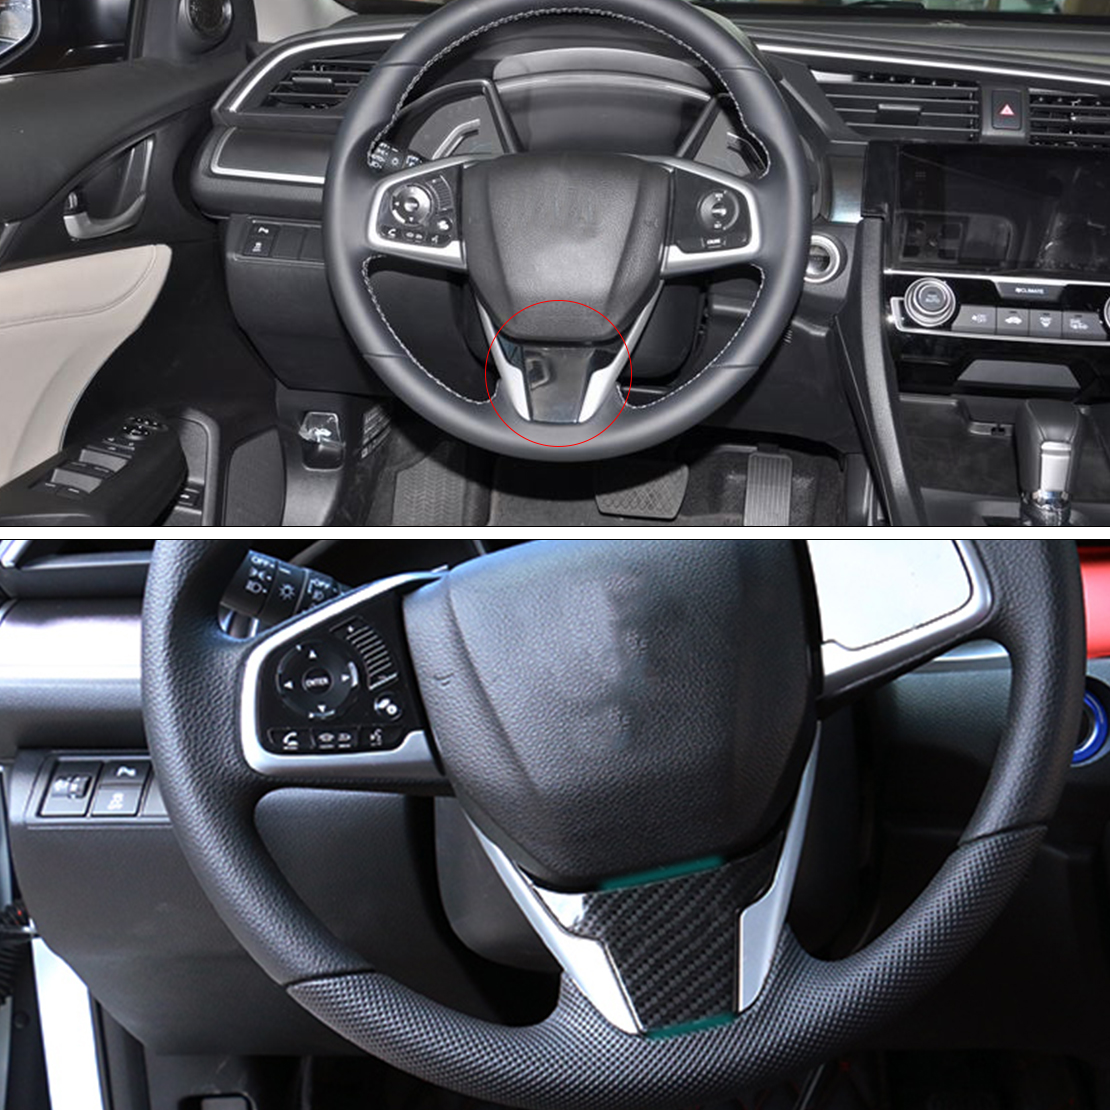 CITALL 1PC car-styling Carbon Fiber Steering Wheel Panel Molding Cover Frame Trim Fit for Honda Civic 10th 2016 2017